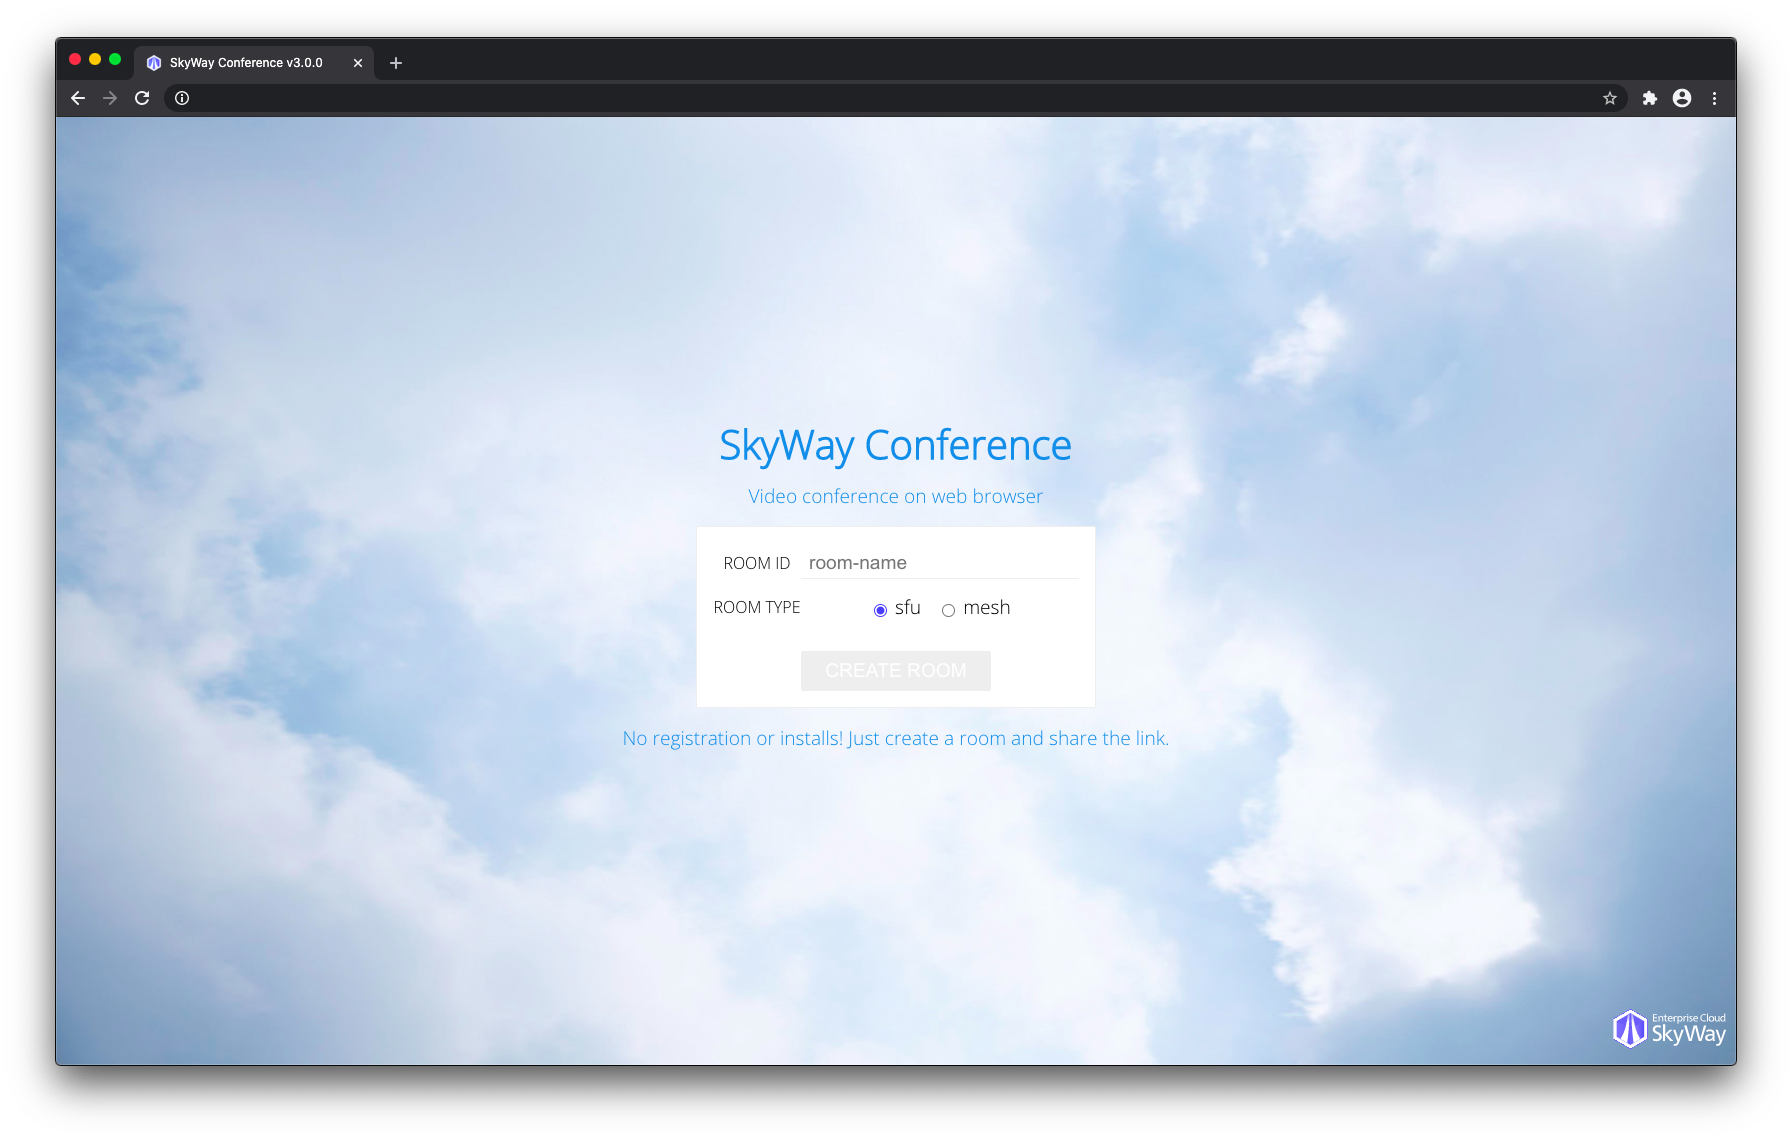 skyway_conf_top.png